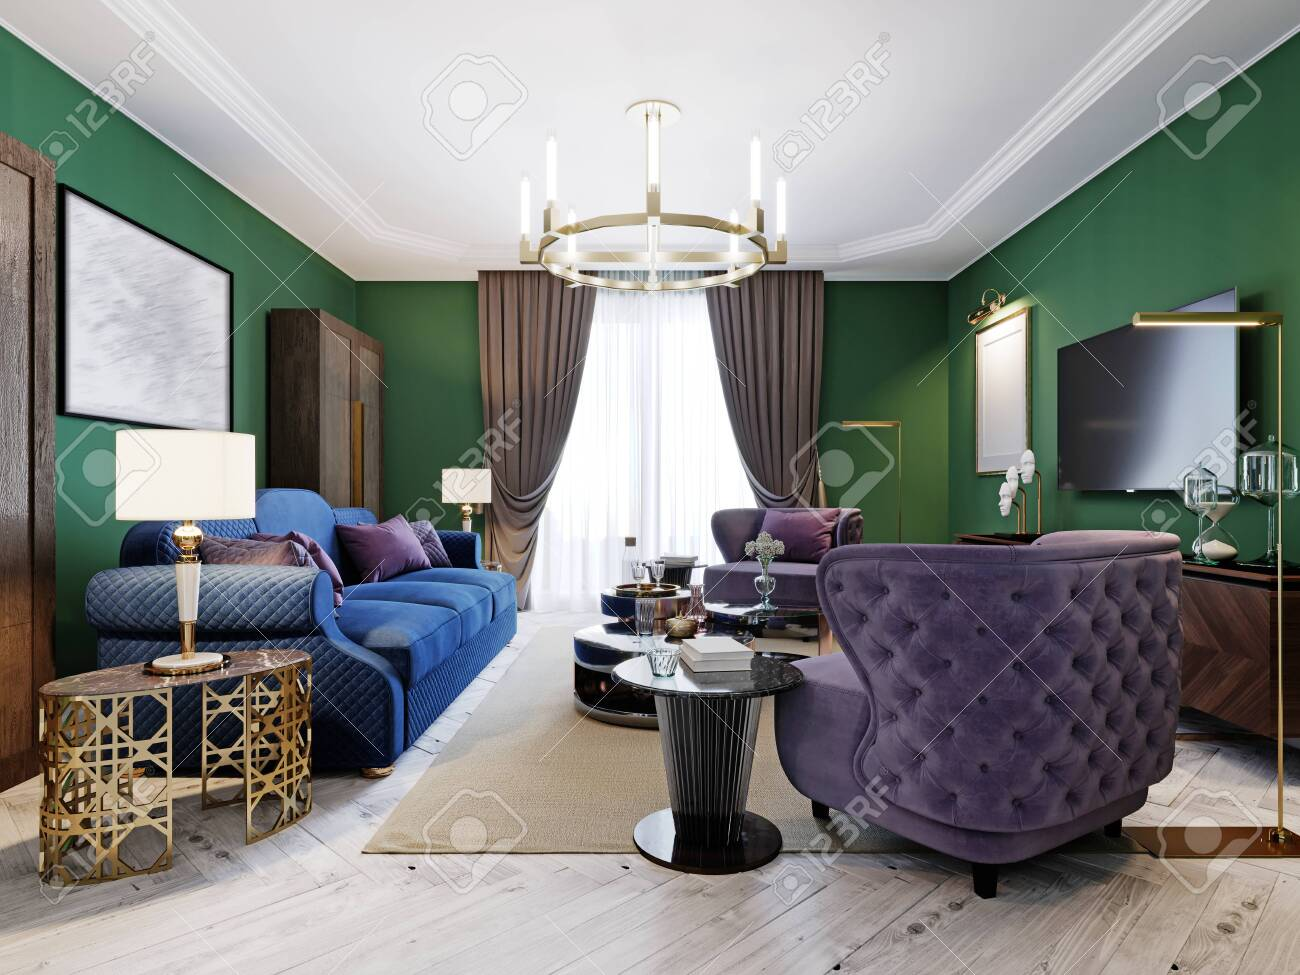 Living Room In Art Deco Style With Green Walls And Purple Upholstered Stock Photo Picture And Royalty Free Image Image 150532382